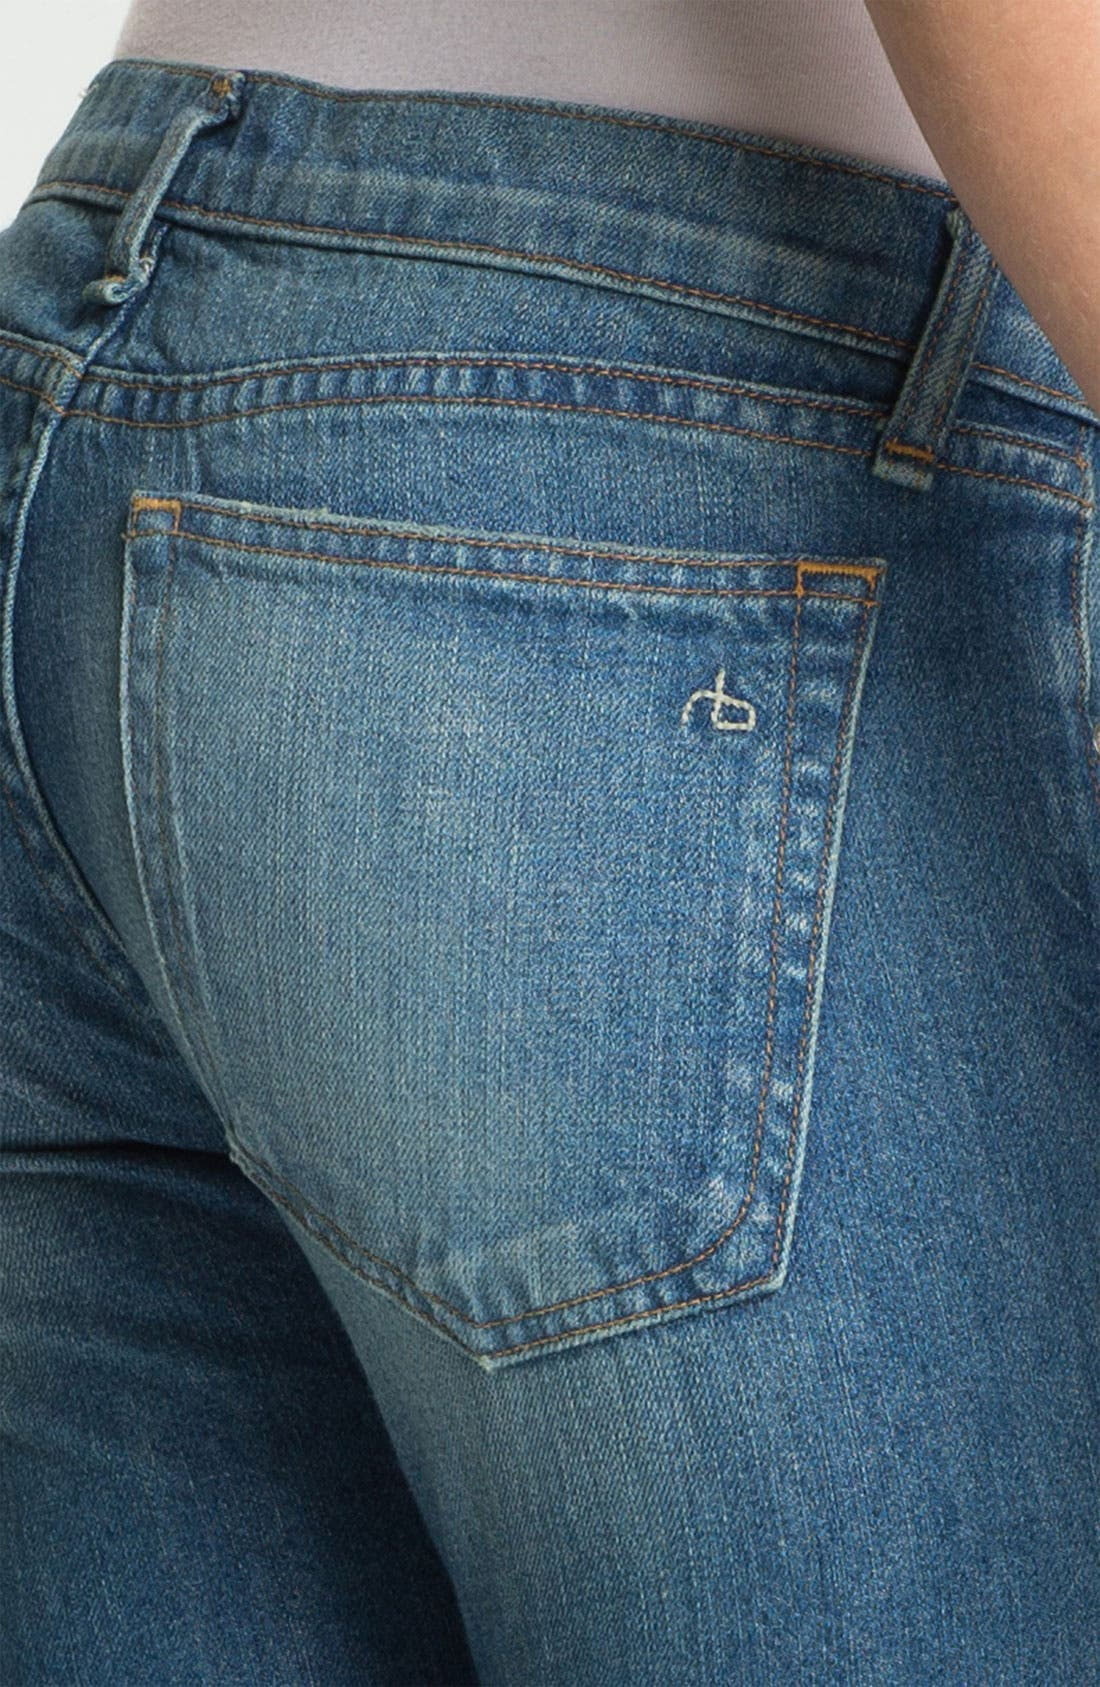 Alternate Image 4  - rag & bone/JEAN 'The Dre' Patch Detail Rigid Jeans